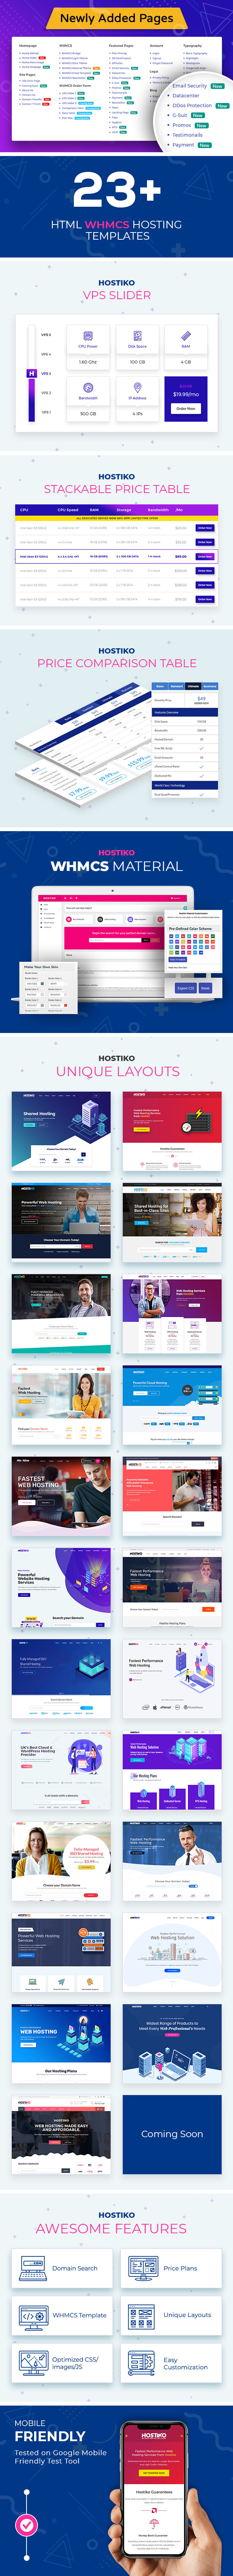 Hostiko - Hosting HTML & WHMCS Template With Isometric Design - 2